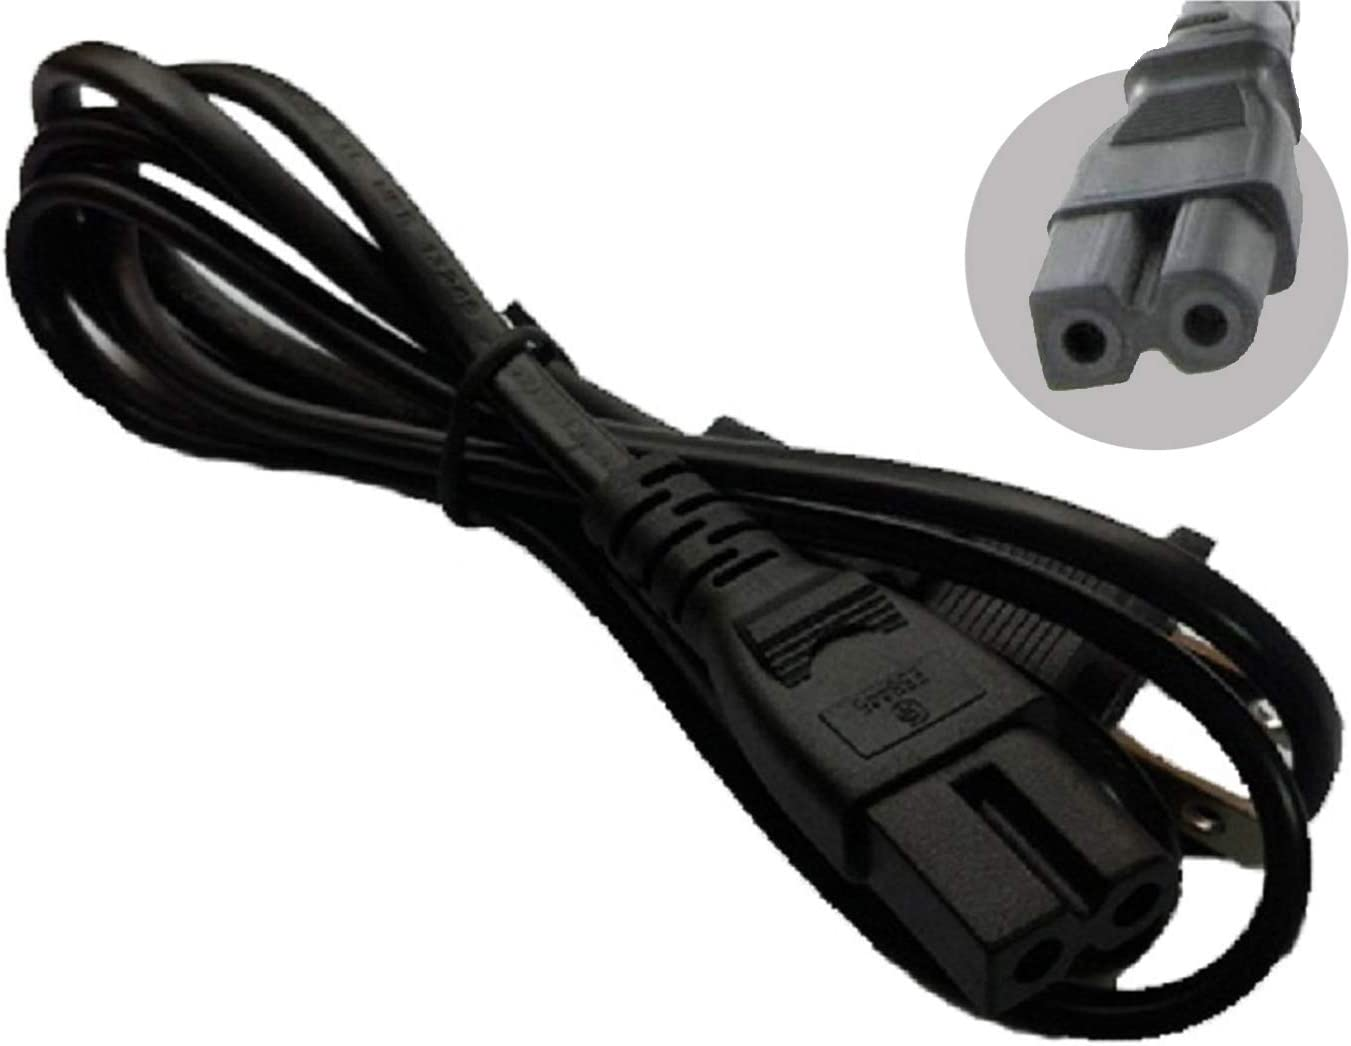 UpBright New AC in Power Cord Cable Plug for Bose PS3-2-1 PS3-2-1 II PS3-2-1 III PS321 Powered Speaker System Acoustimass Subwoofer Bose Cinemate 1Sr SR1 SR 1 Digital Home Theater Speaker System